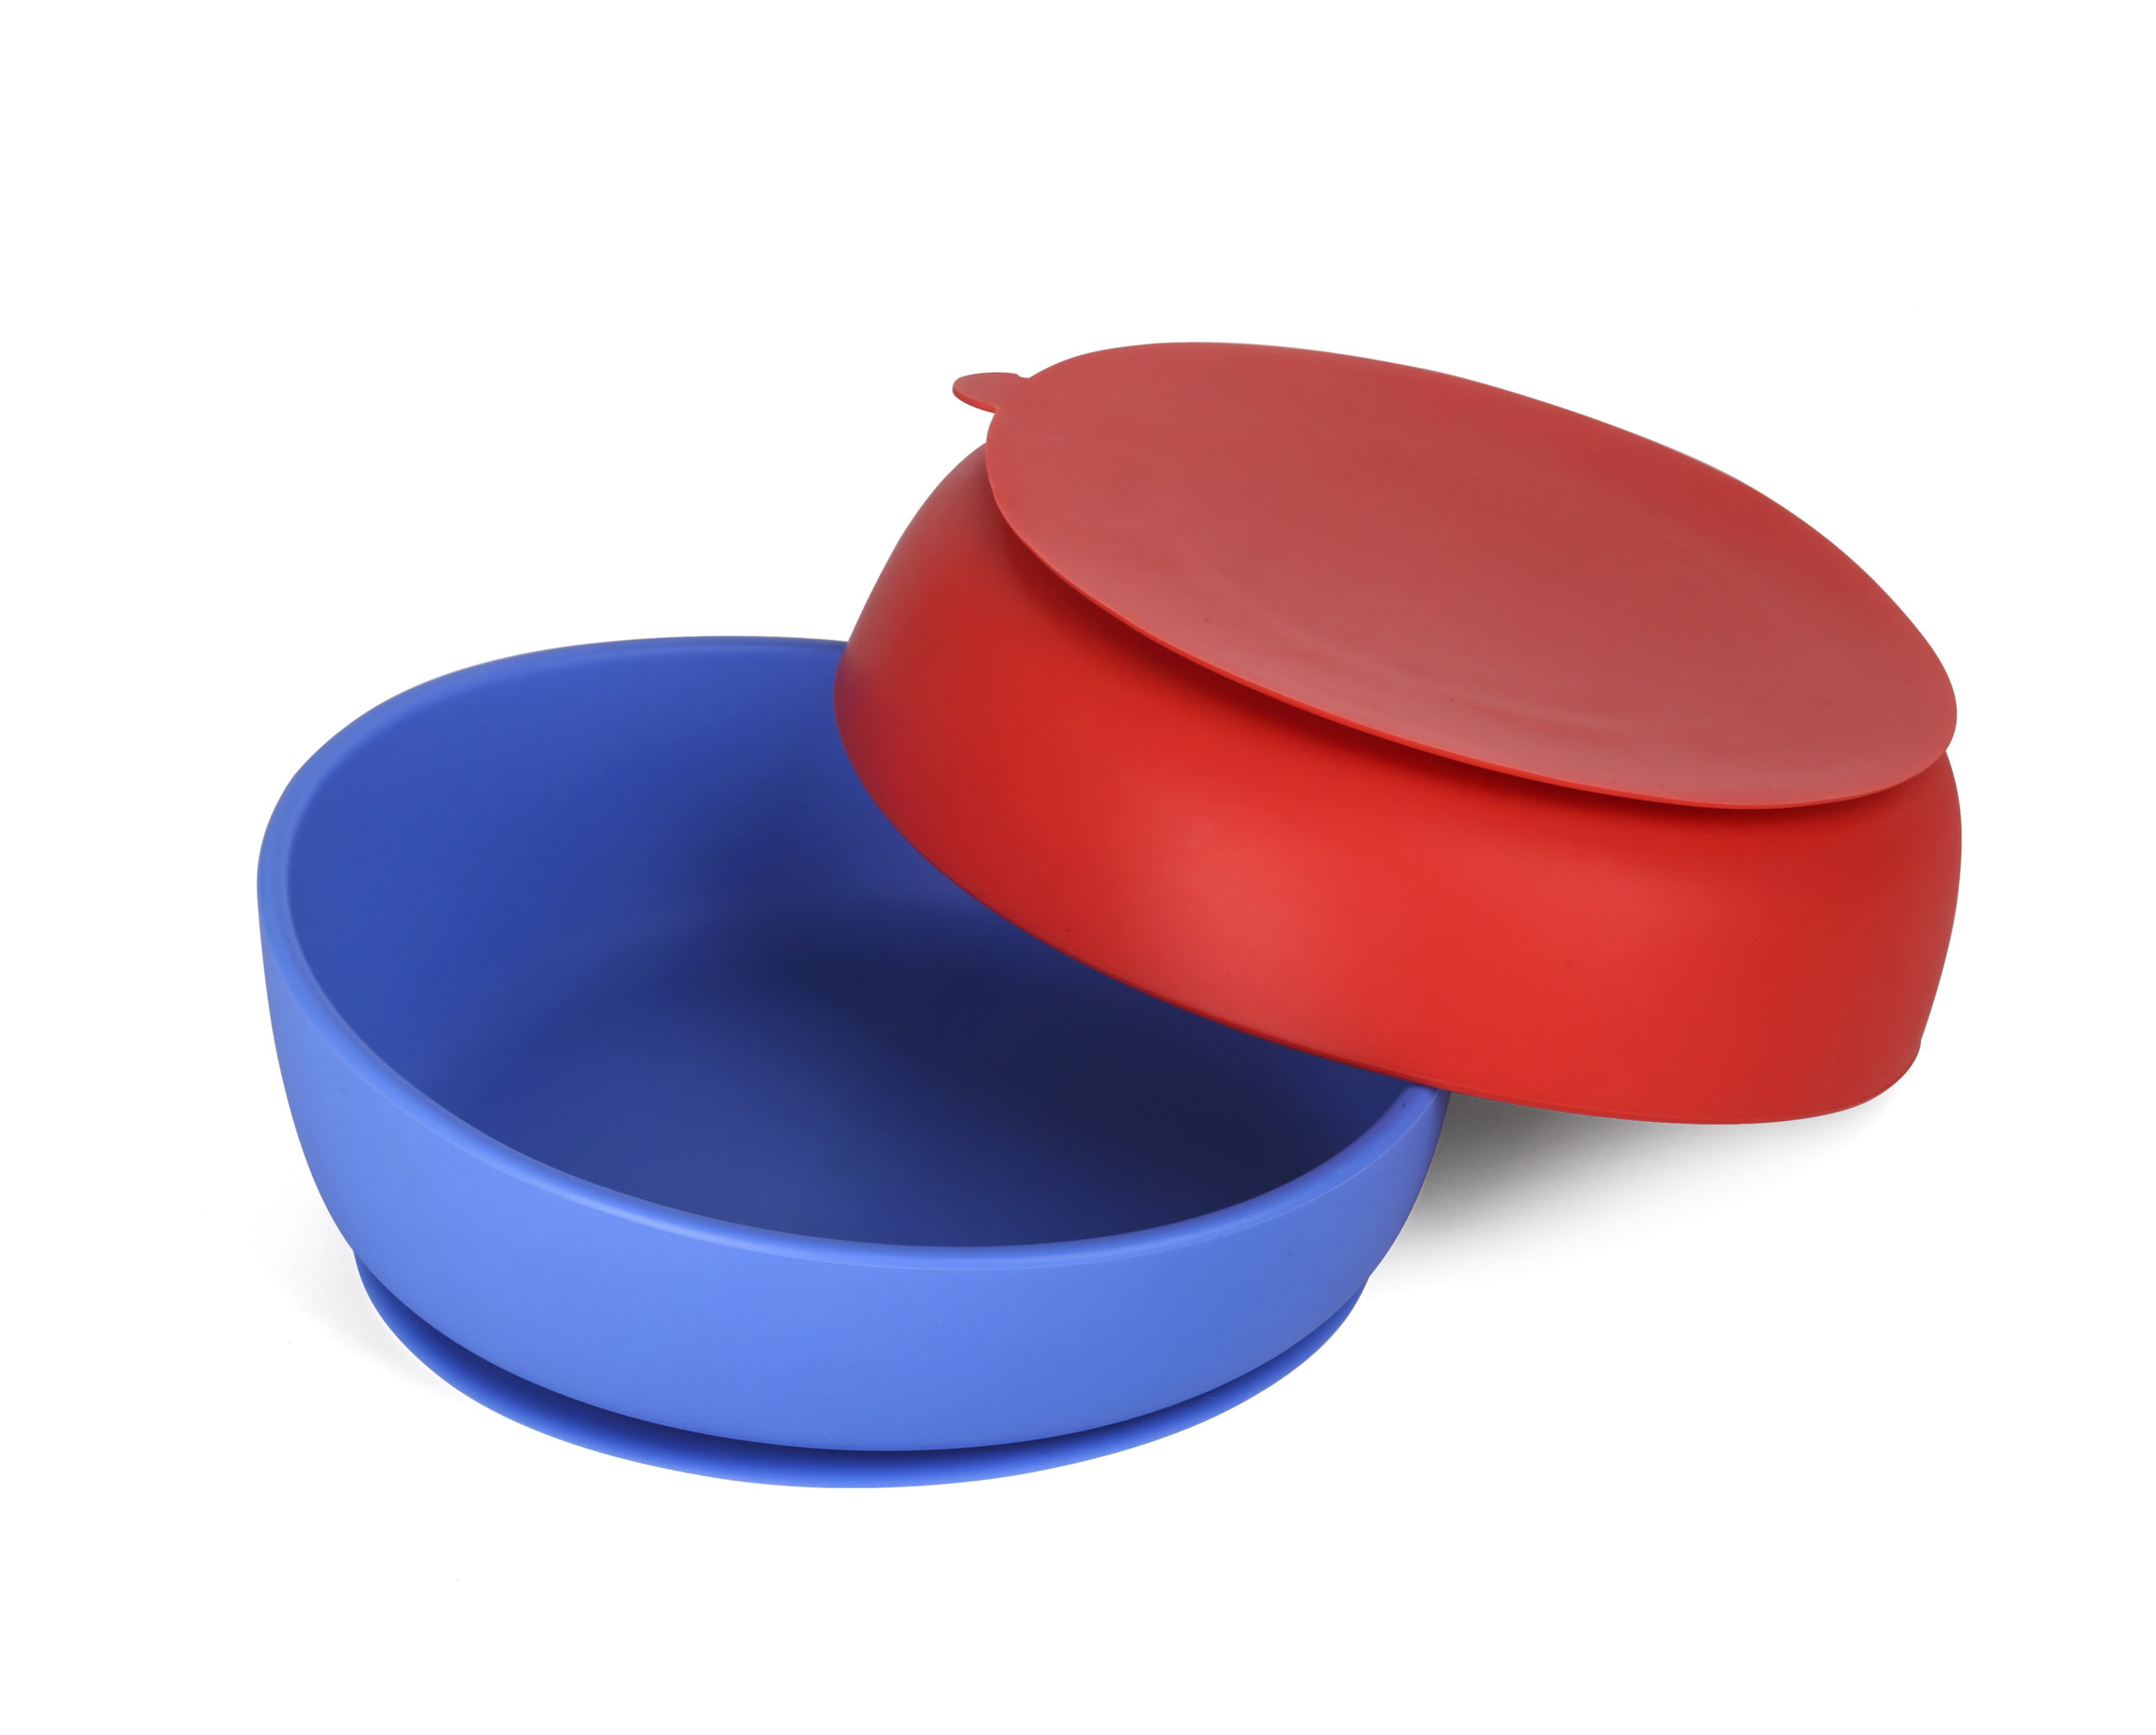 Doidy Bowl Red & Blue